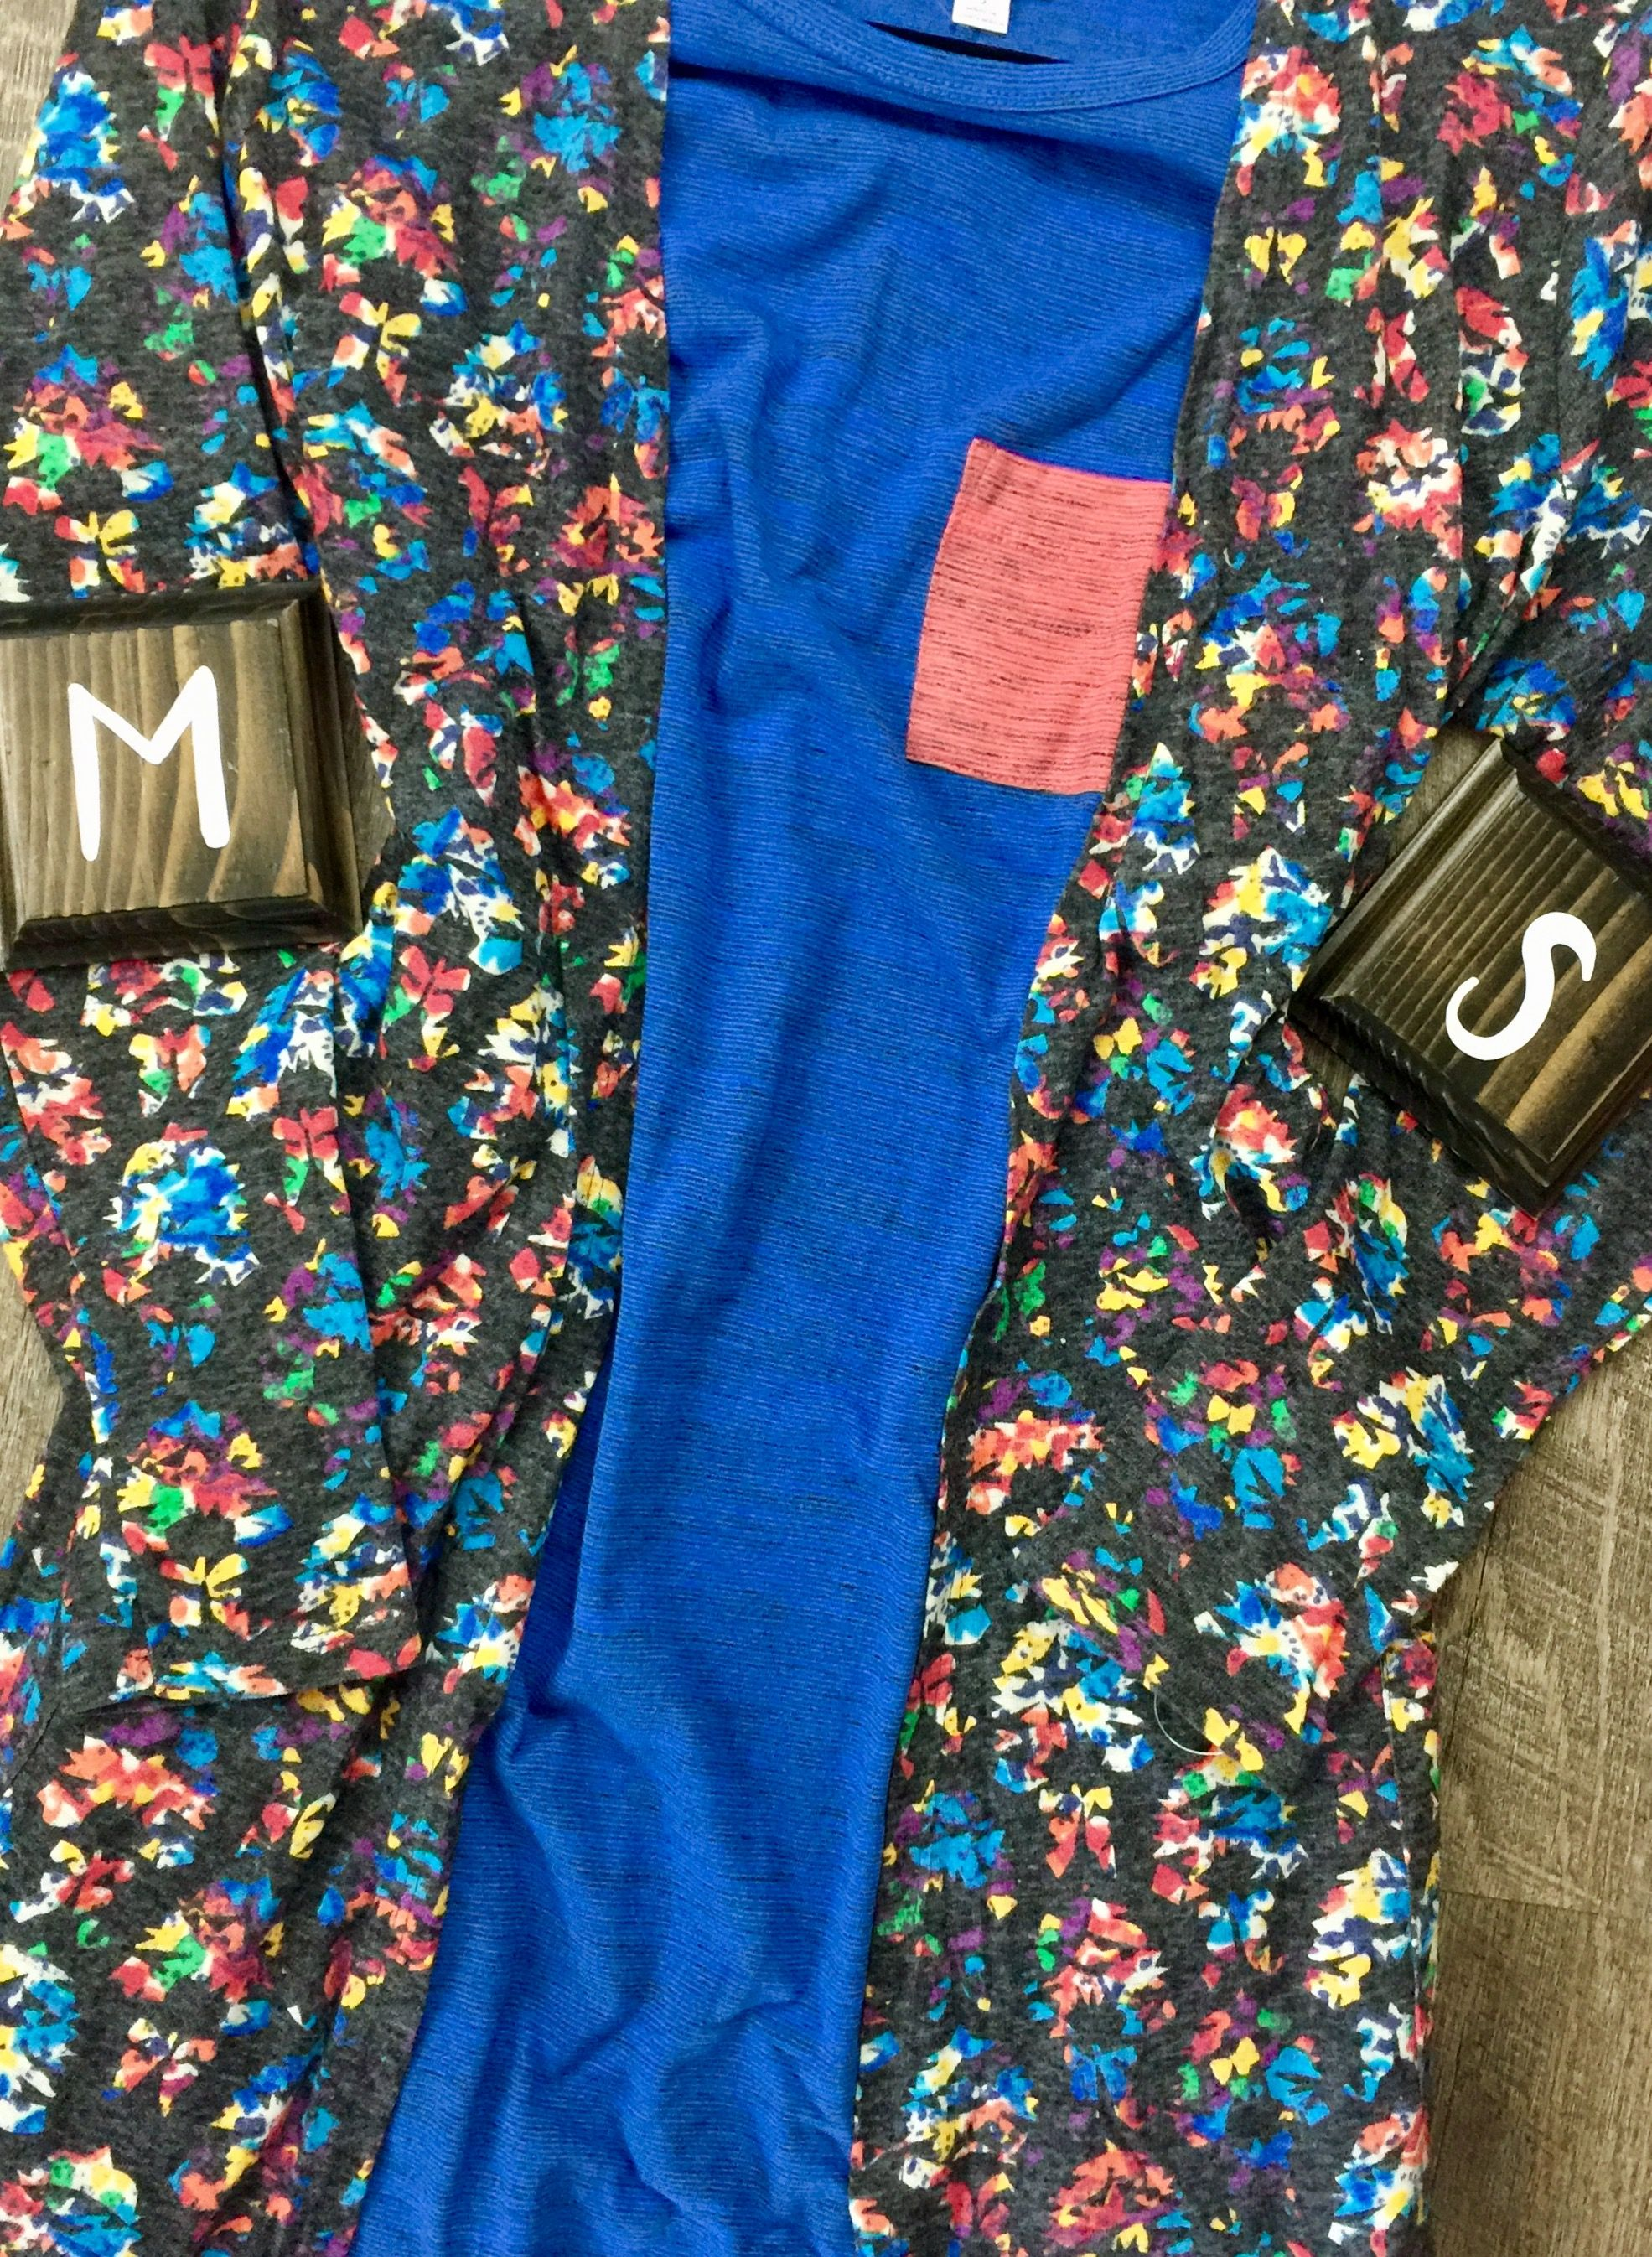 43364d02cf14 M grey and floral Sarah paired with S blue and coral Carly | Lularoe ...